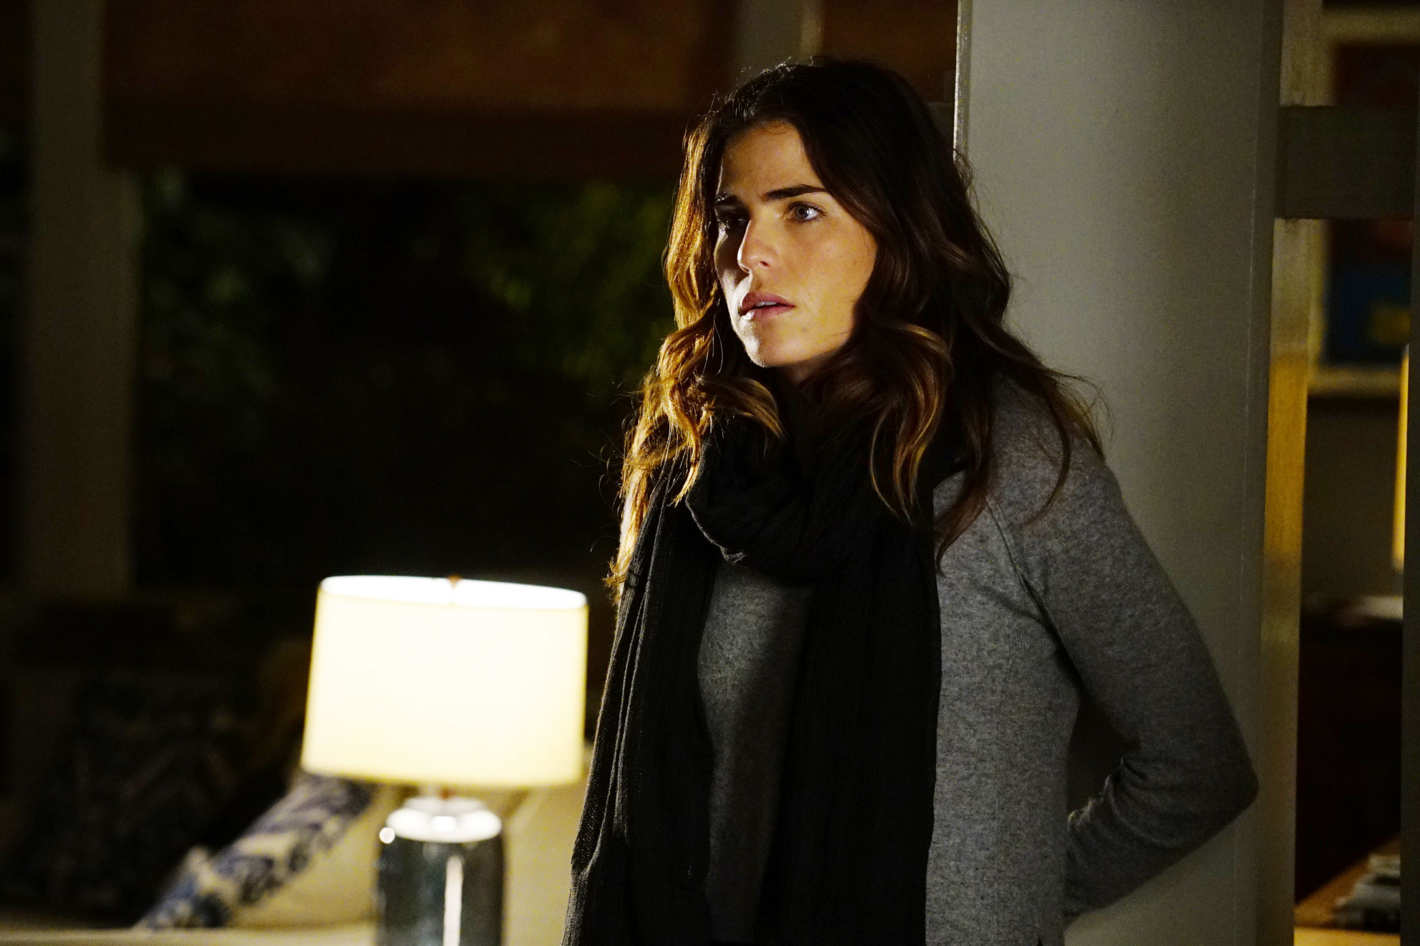 How To Get Away With Murder Season Finale Recap: Who Killed Wes?